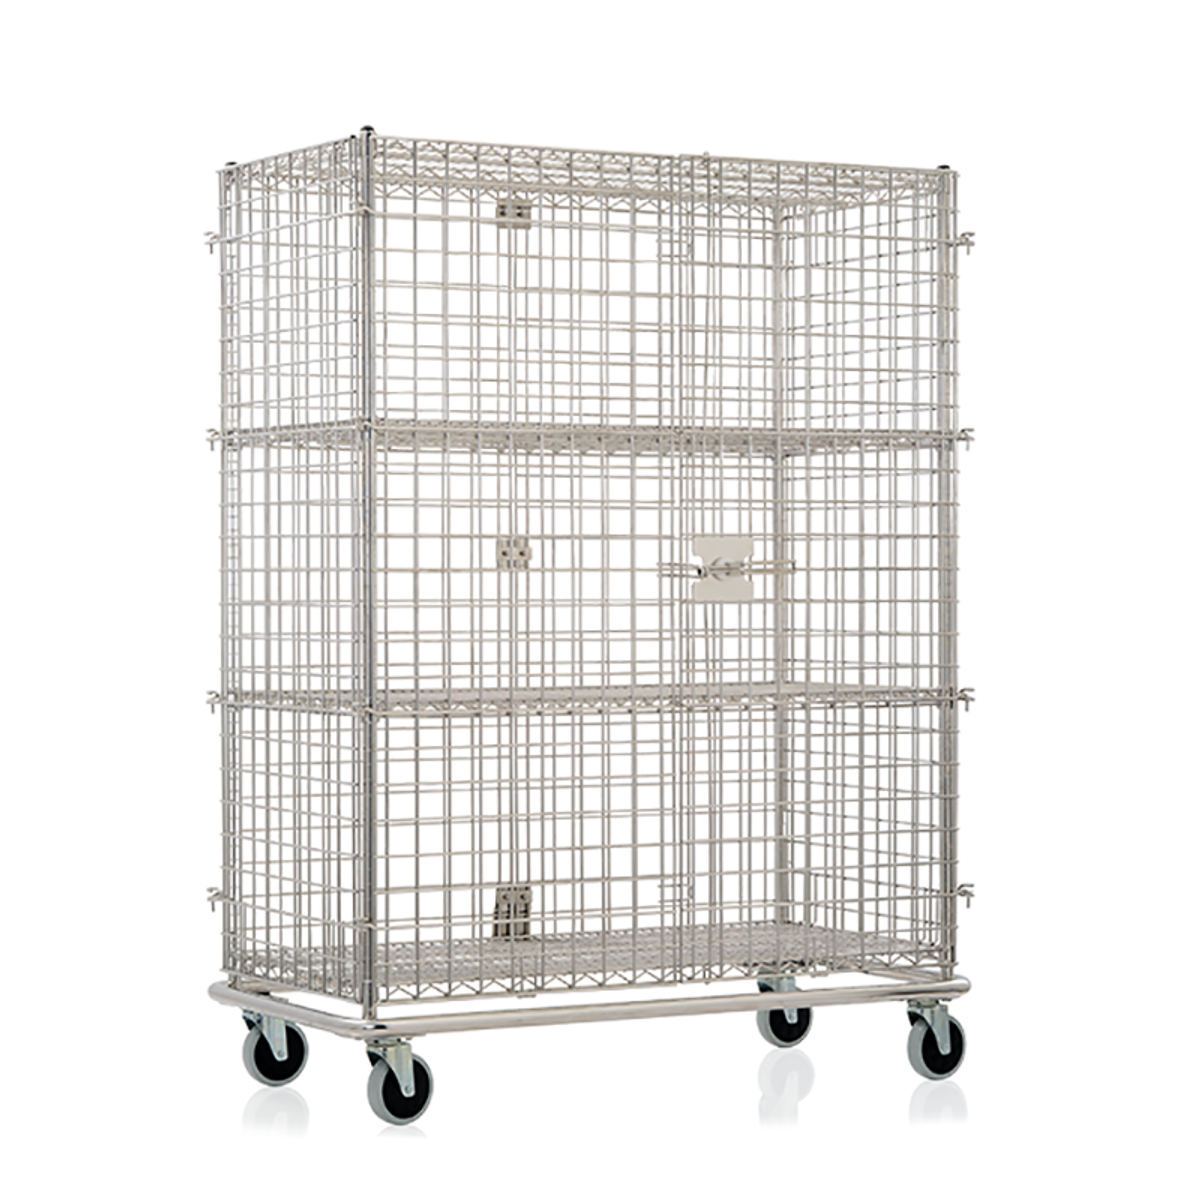 Things to Consider When Buying a Security Cage Cart in Malaysia